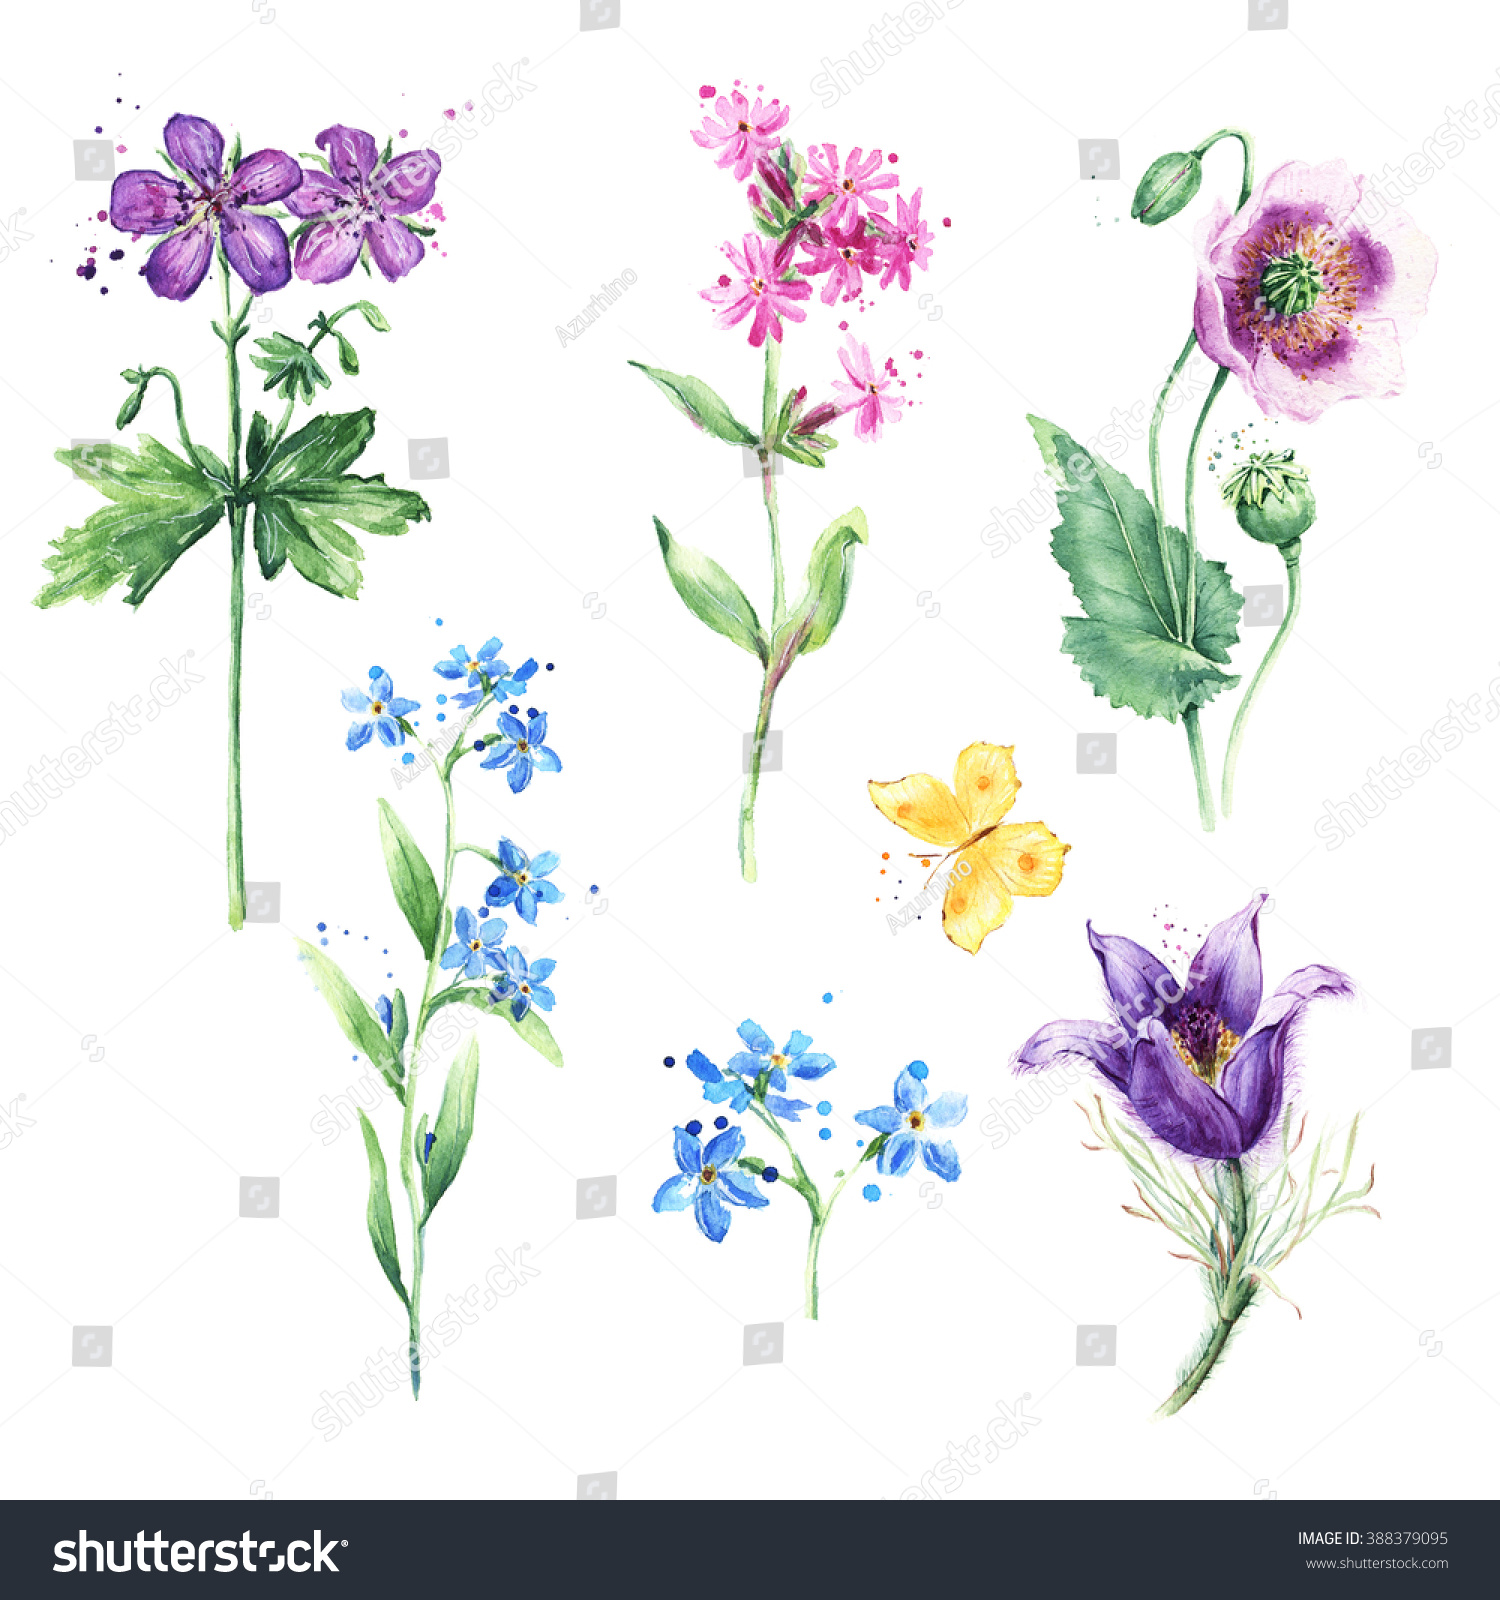 Meadow Floral Set Collection Wild Flowers Stock Illustration 388379095 Shutterstock